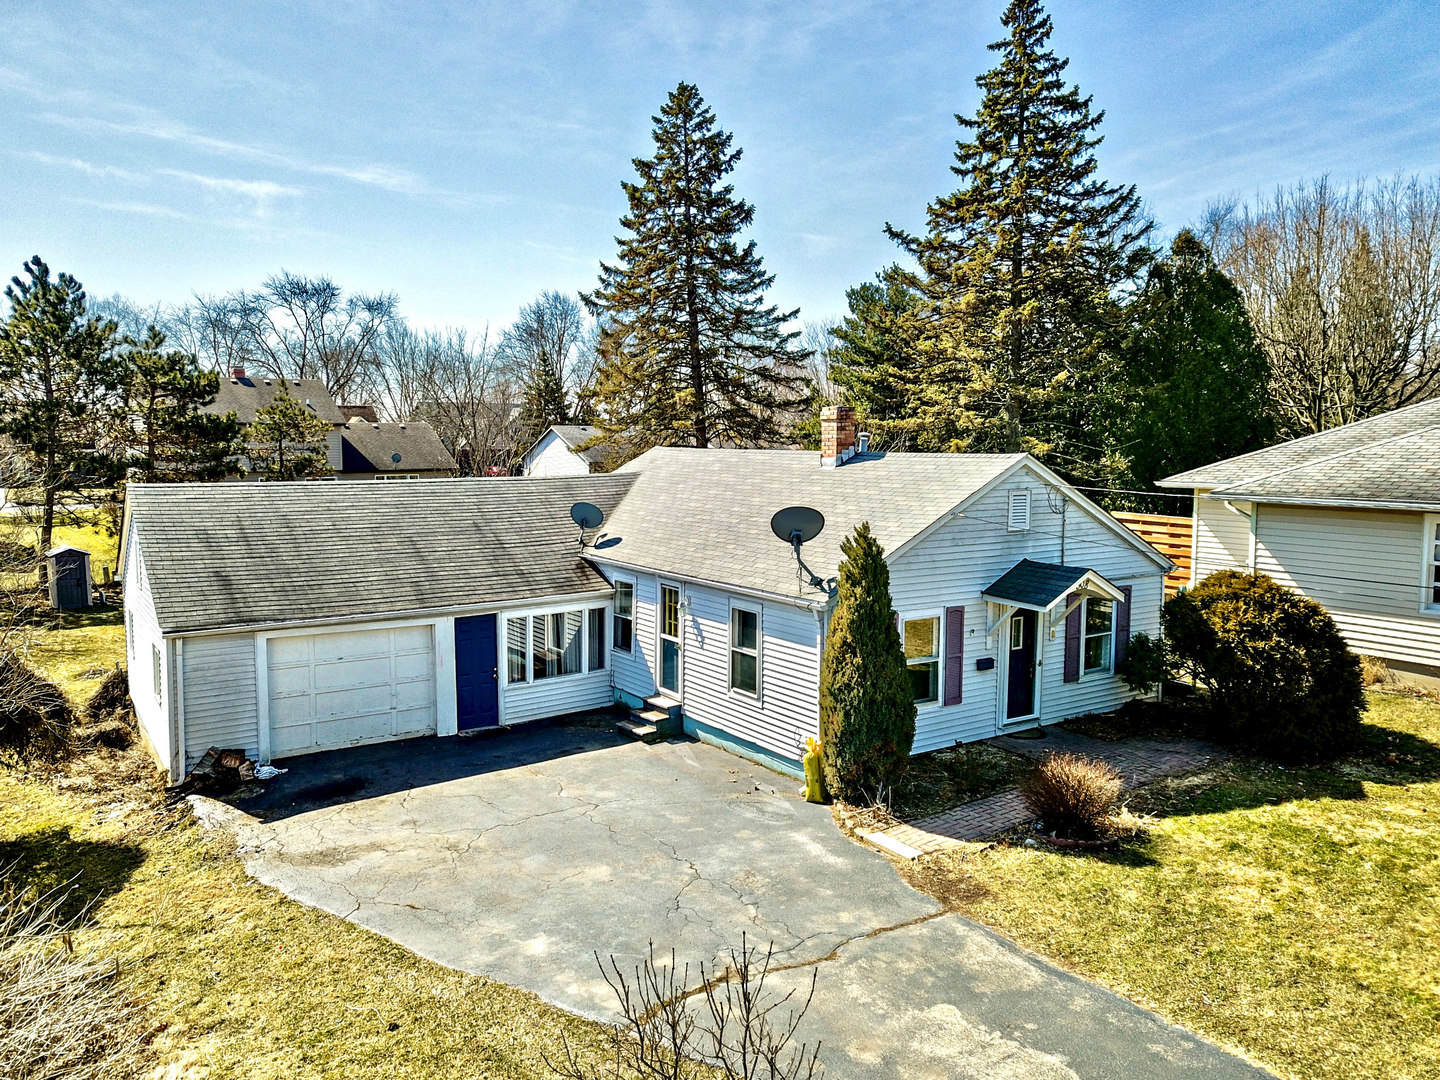 Photo for 508 Burbank Avenue, Woodstock, IL 60098 (MLS # 10634255)